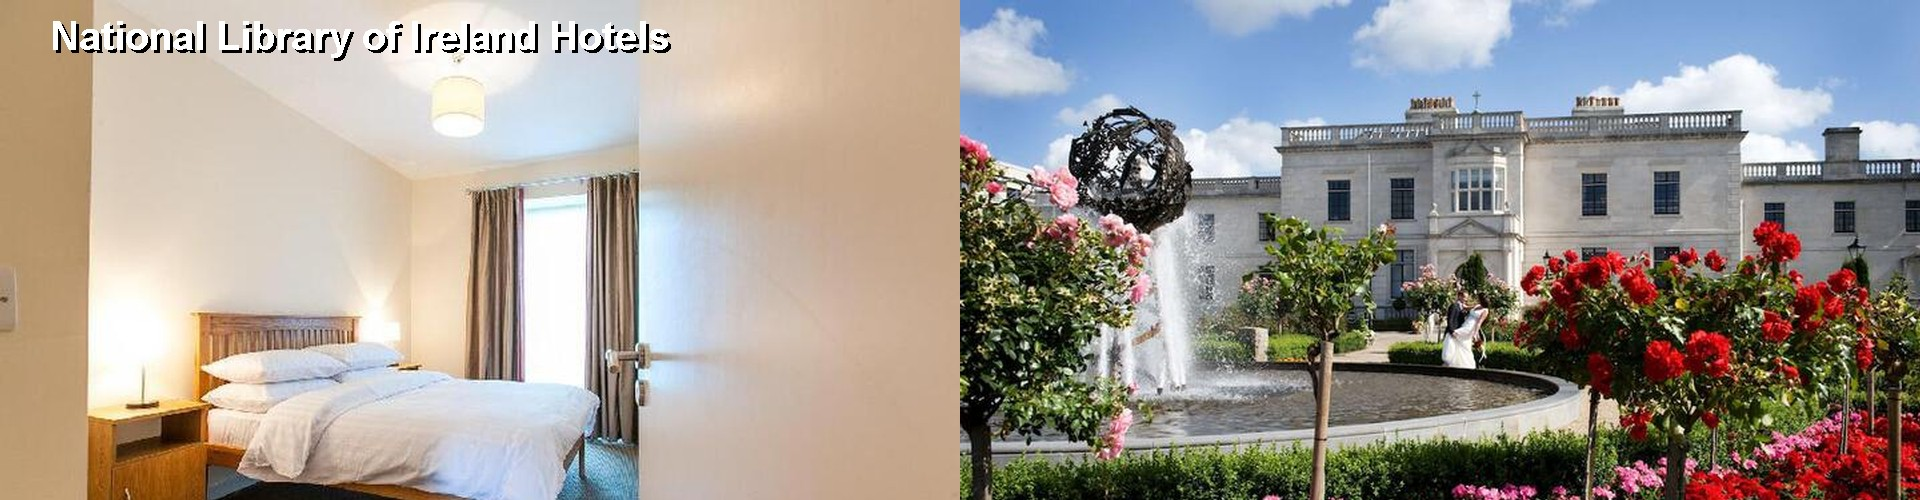 5 Best Hotels near National Library of Ireland